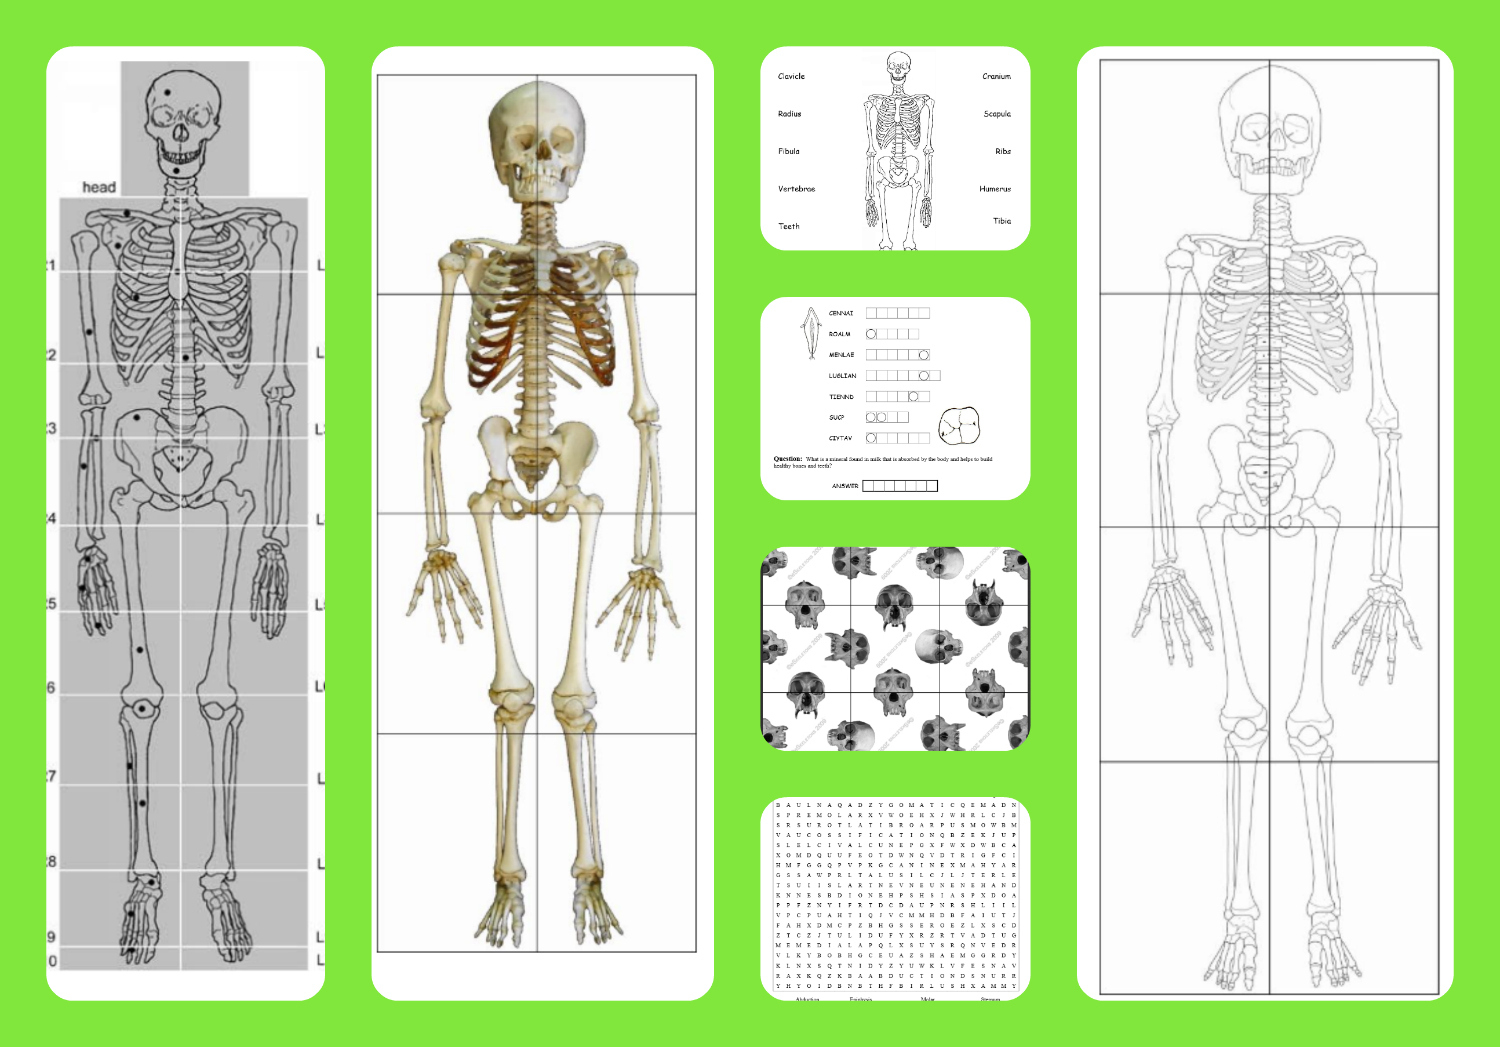 Free Printable Life-Sized Child And Adult Skeletons, Skull Puzzles - Printable Skeleton Puzzle